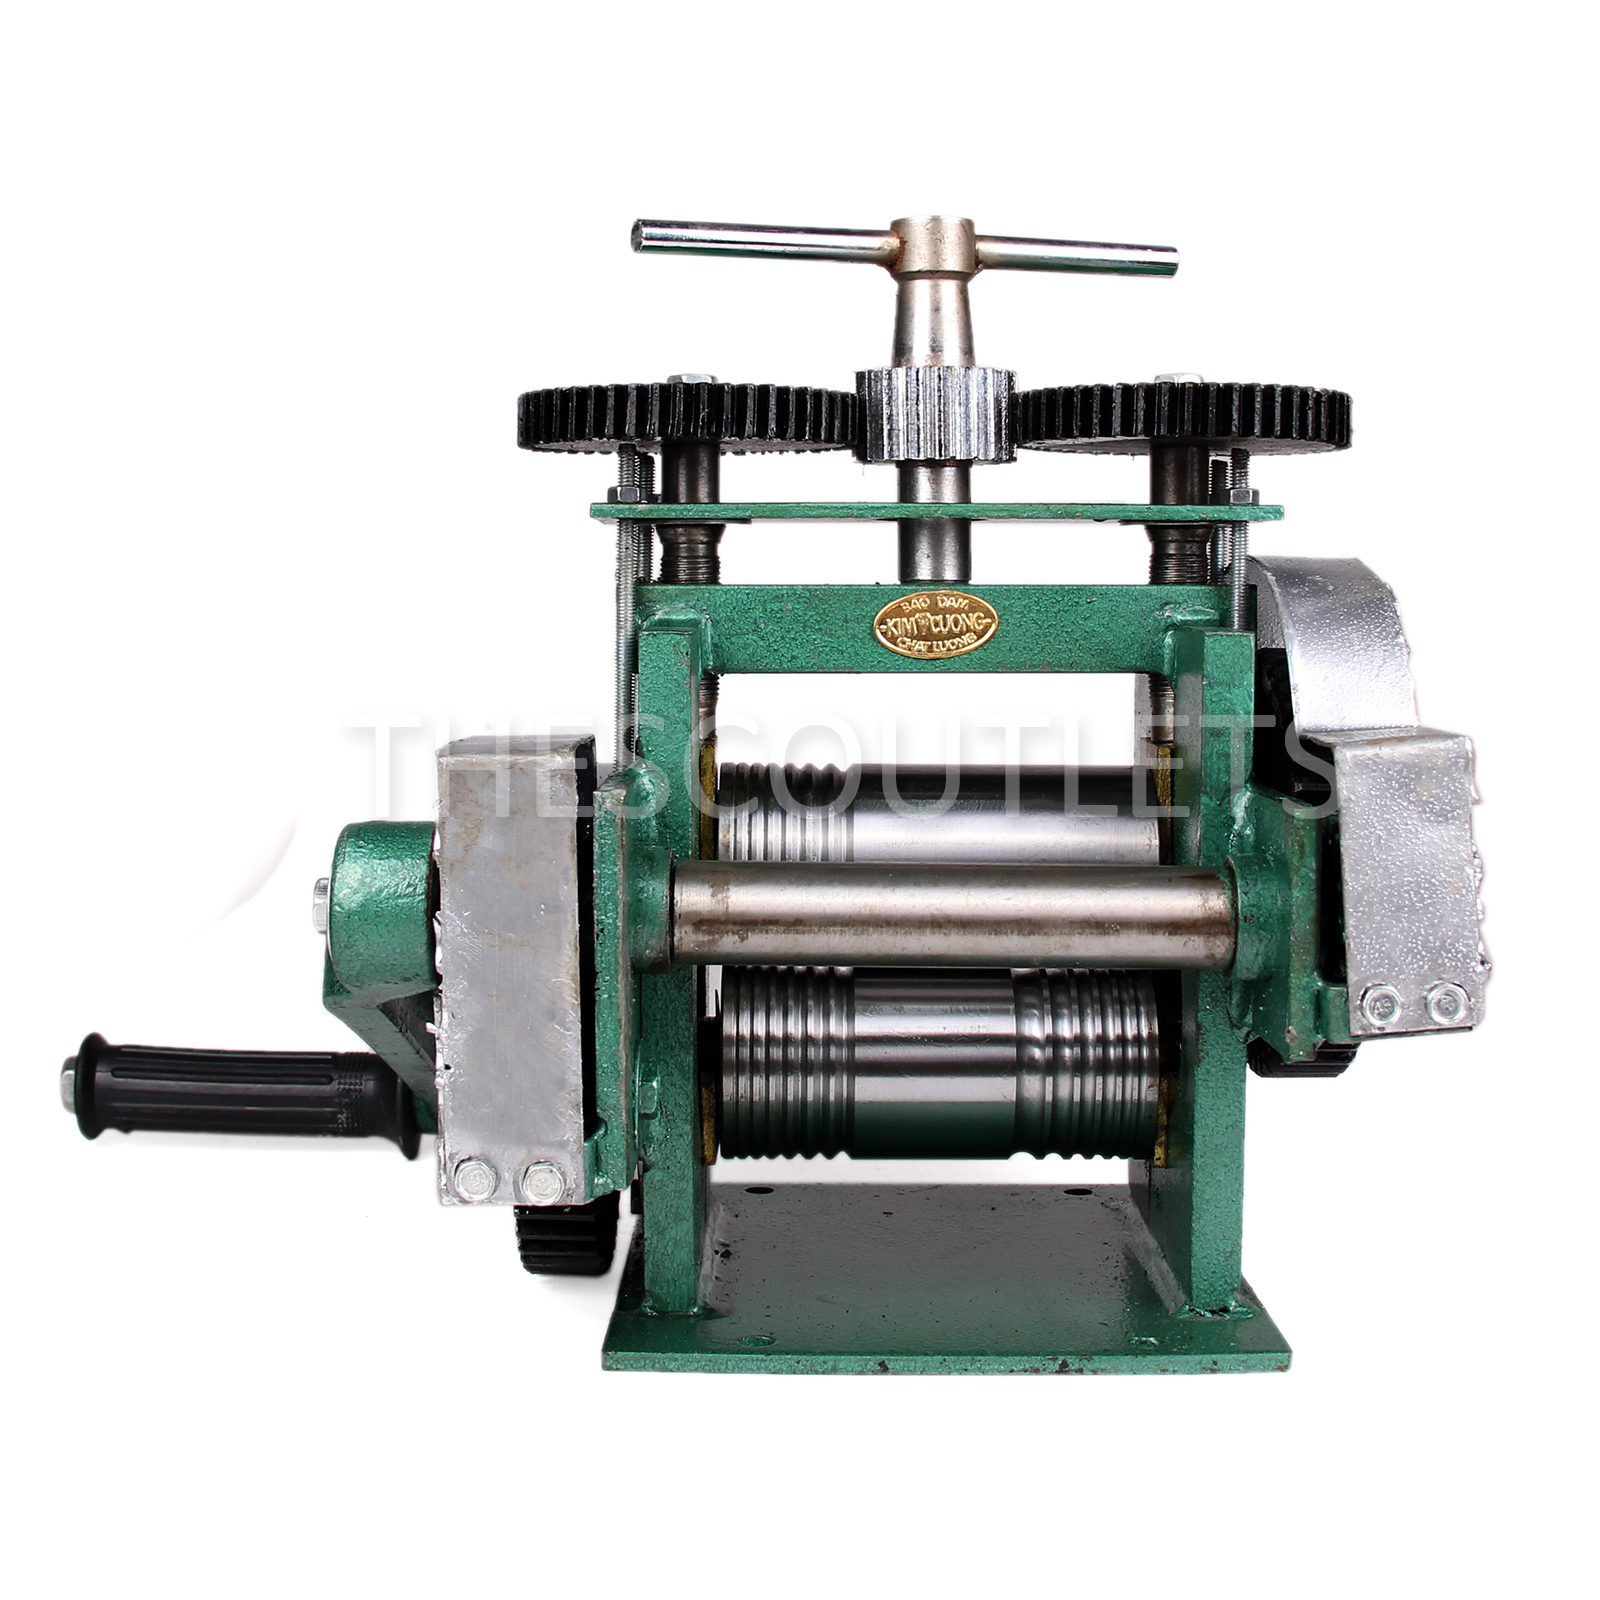 manual combination rolling mill machine jewelry press